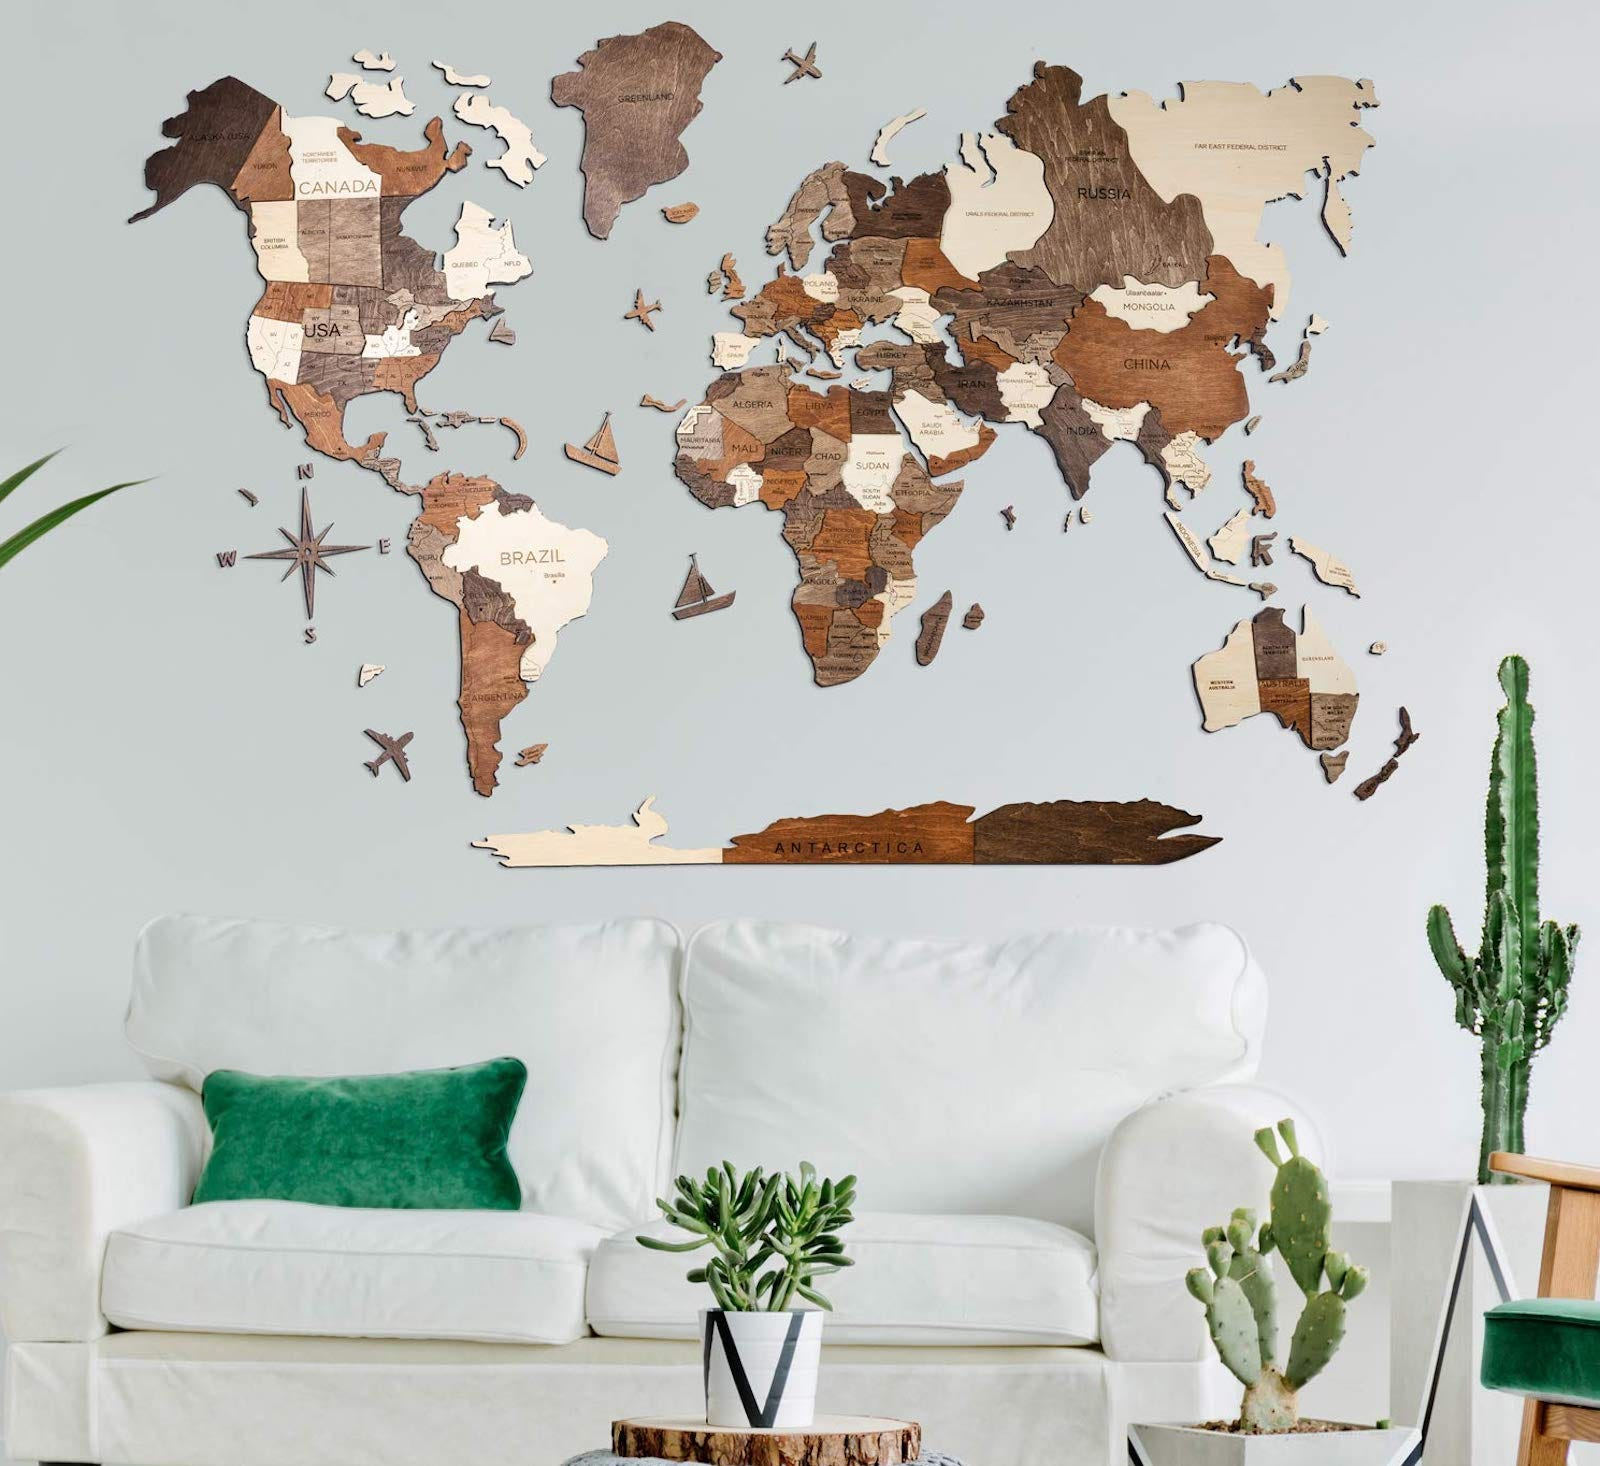 A 3D wooden world map on a gray wall above a white couch